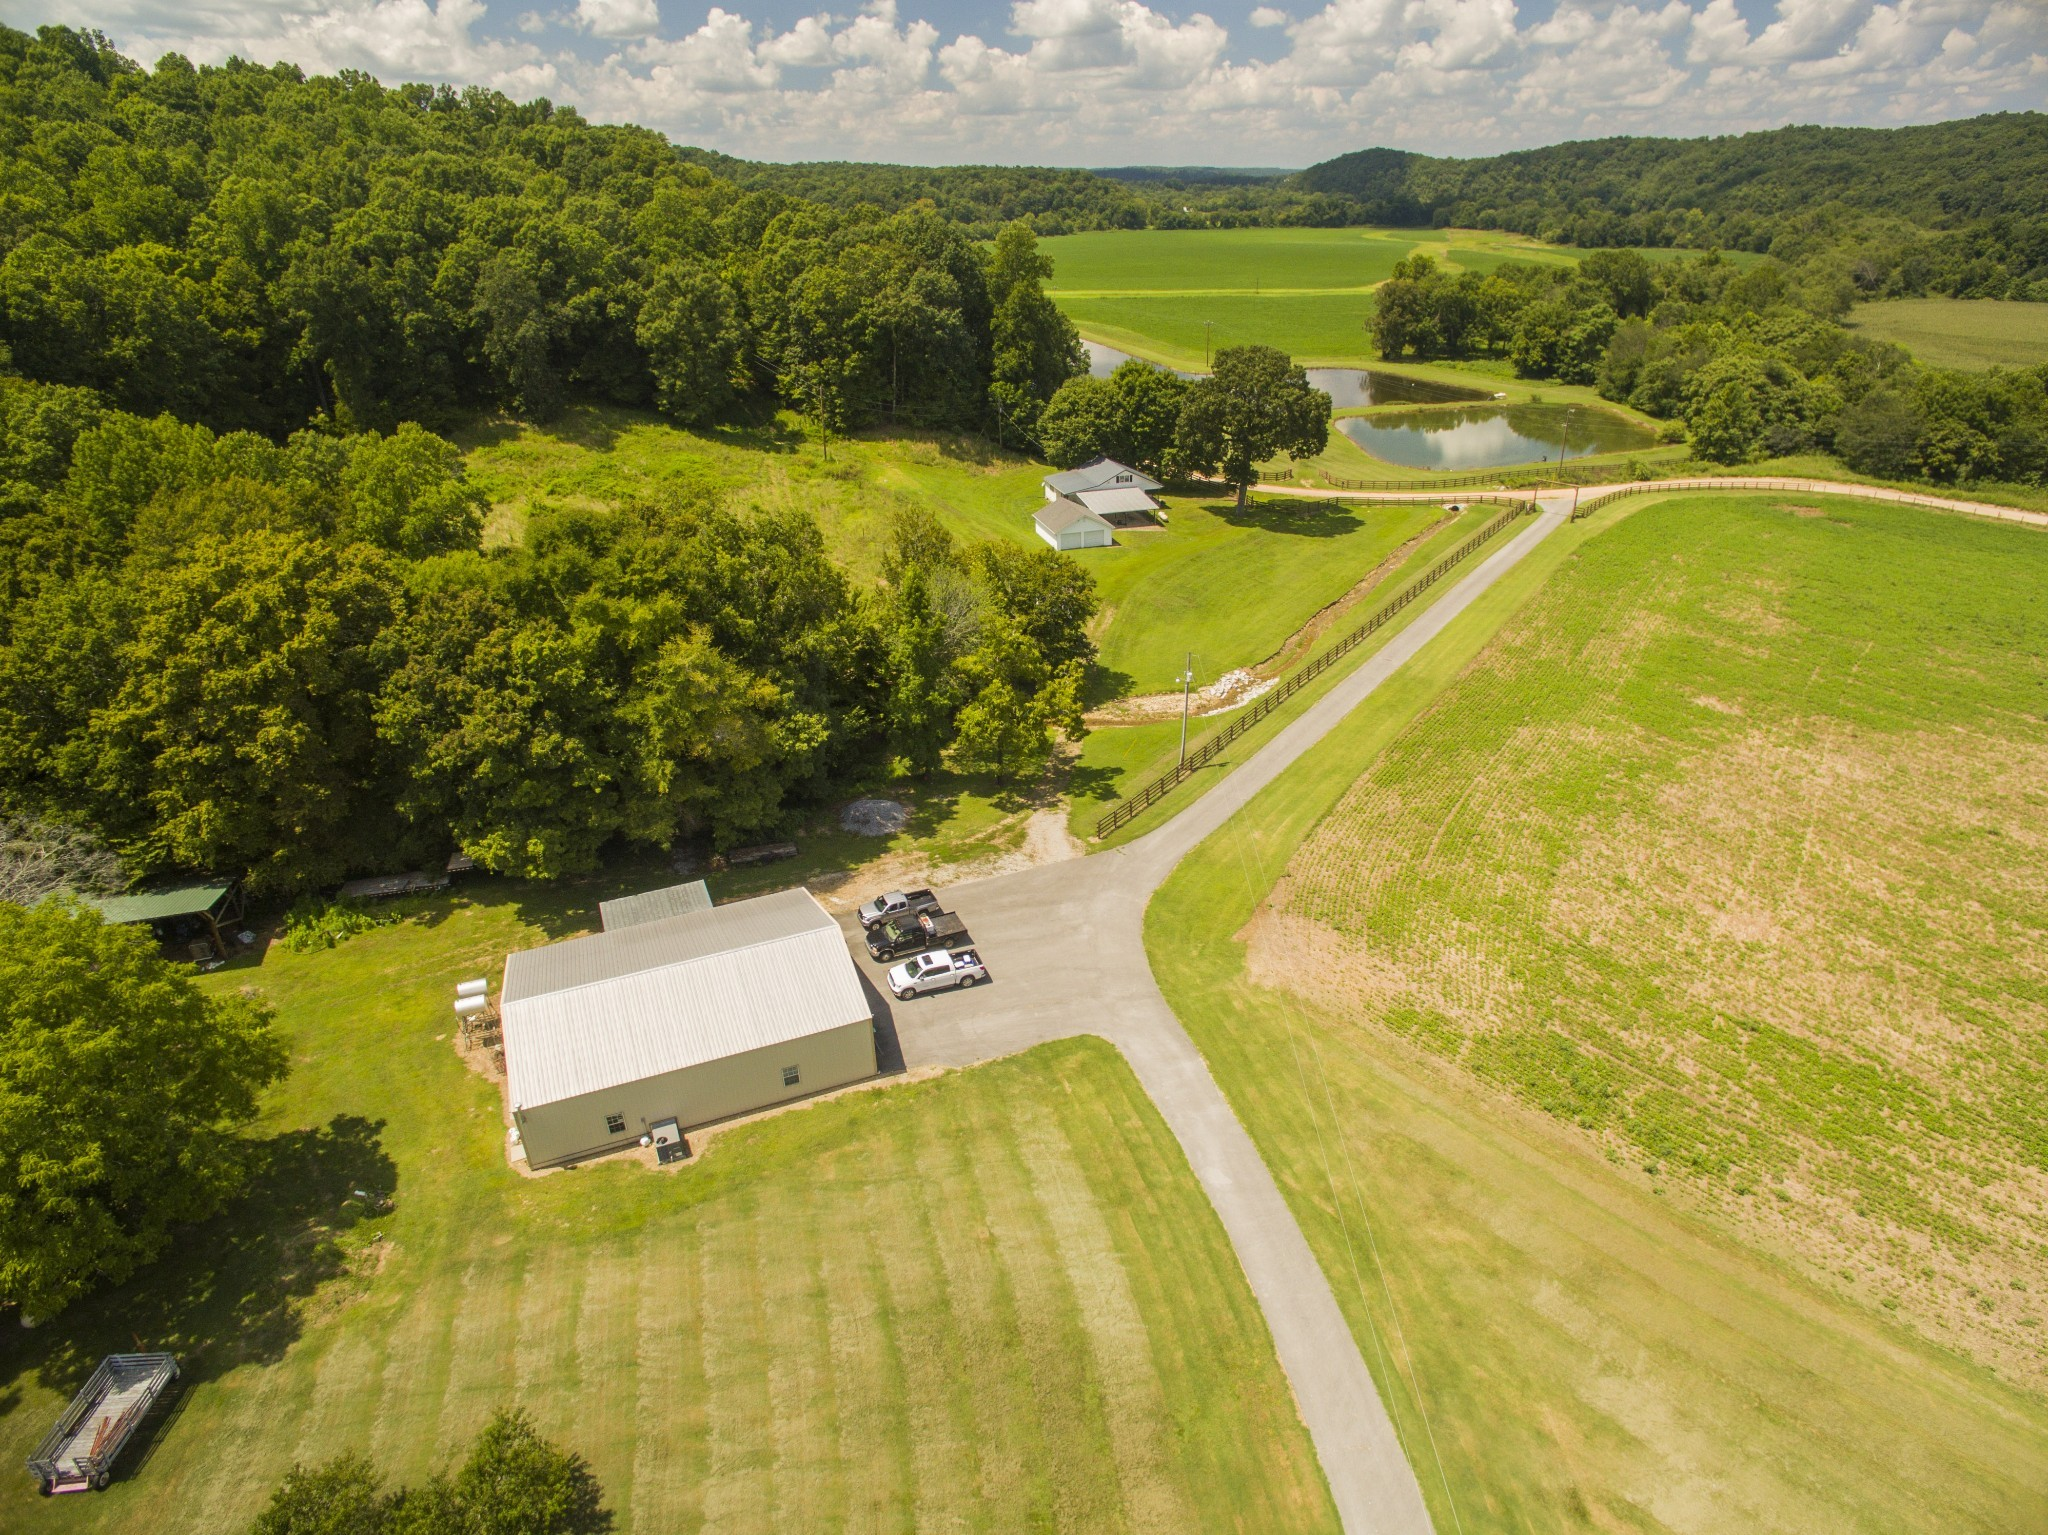 451 Backside Beaverdam Rd, Centerville, TN 37033 - Centerville, TN real estate listing